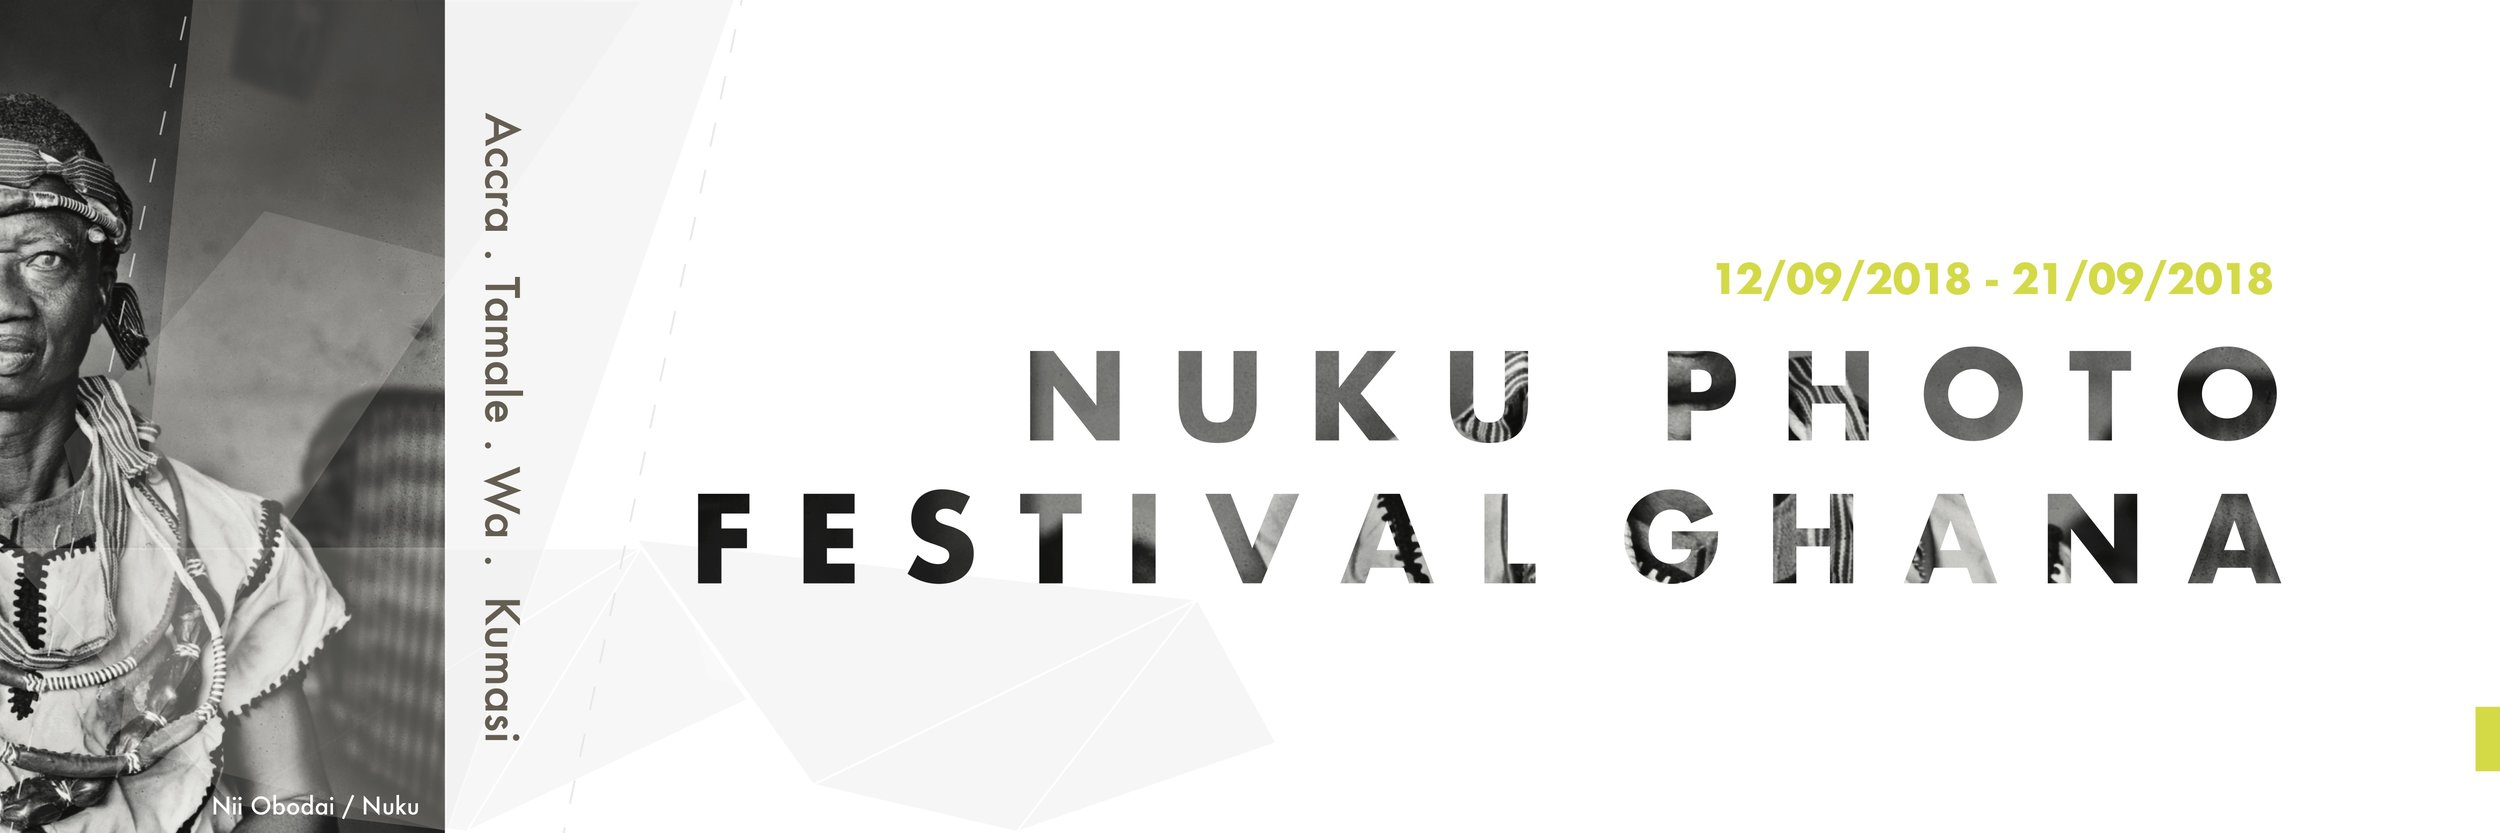 - Nuku Photo Festival Ghana is the country's first festival for photographic encounters, exchanges, and story-telling, taking place biennial. It brings together both local and international photographers and visual artists, and offers a space for artistic explorations and exchanges. The participating artists – both established ones and young talents – have a unique opportunity to share their work with an international audience and their peers – with the vision to inspire and be inspired, challenge and be challenged.The first Festival edition took place from 12 to 21 September 2018, and included a variety of events – exhibitions, art talks, conferences, portfolio reviews, artist-in-residency, and more – in Accra, Tamale, Wa and Kumasi.